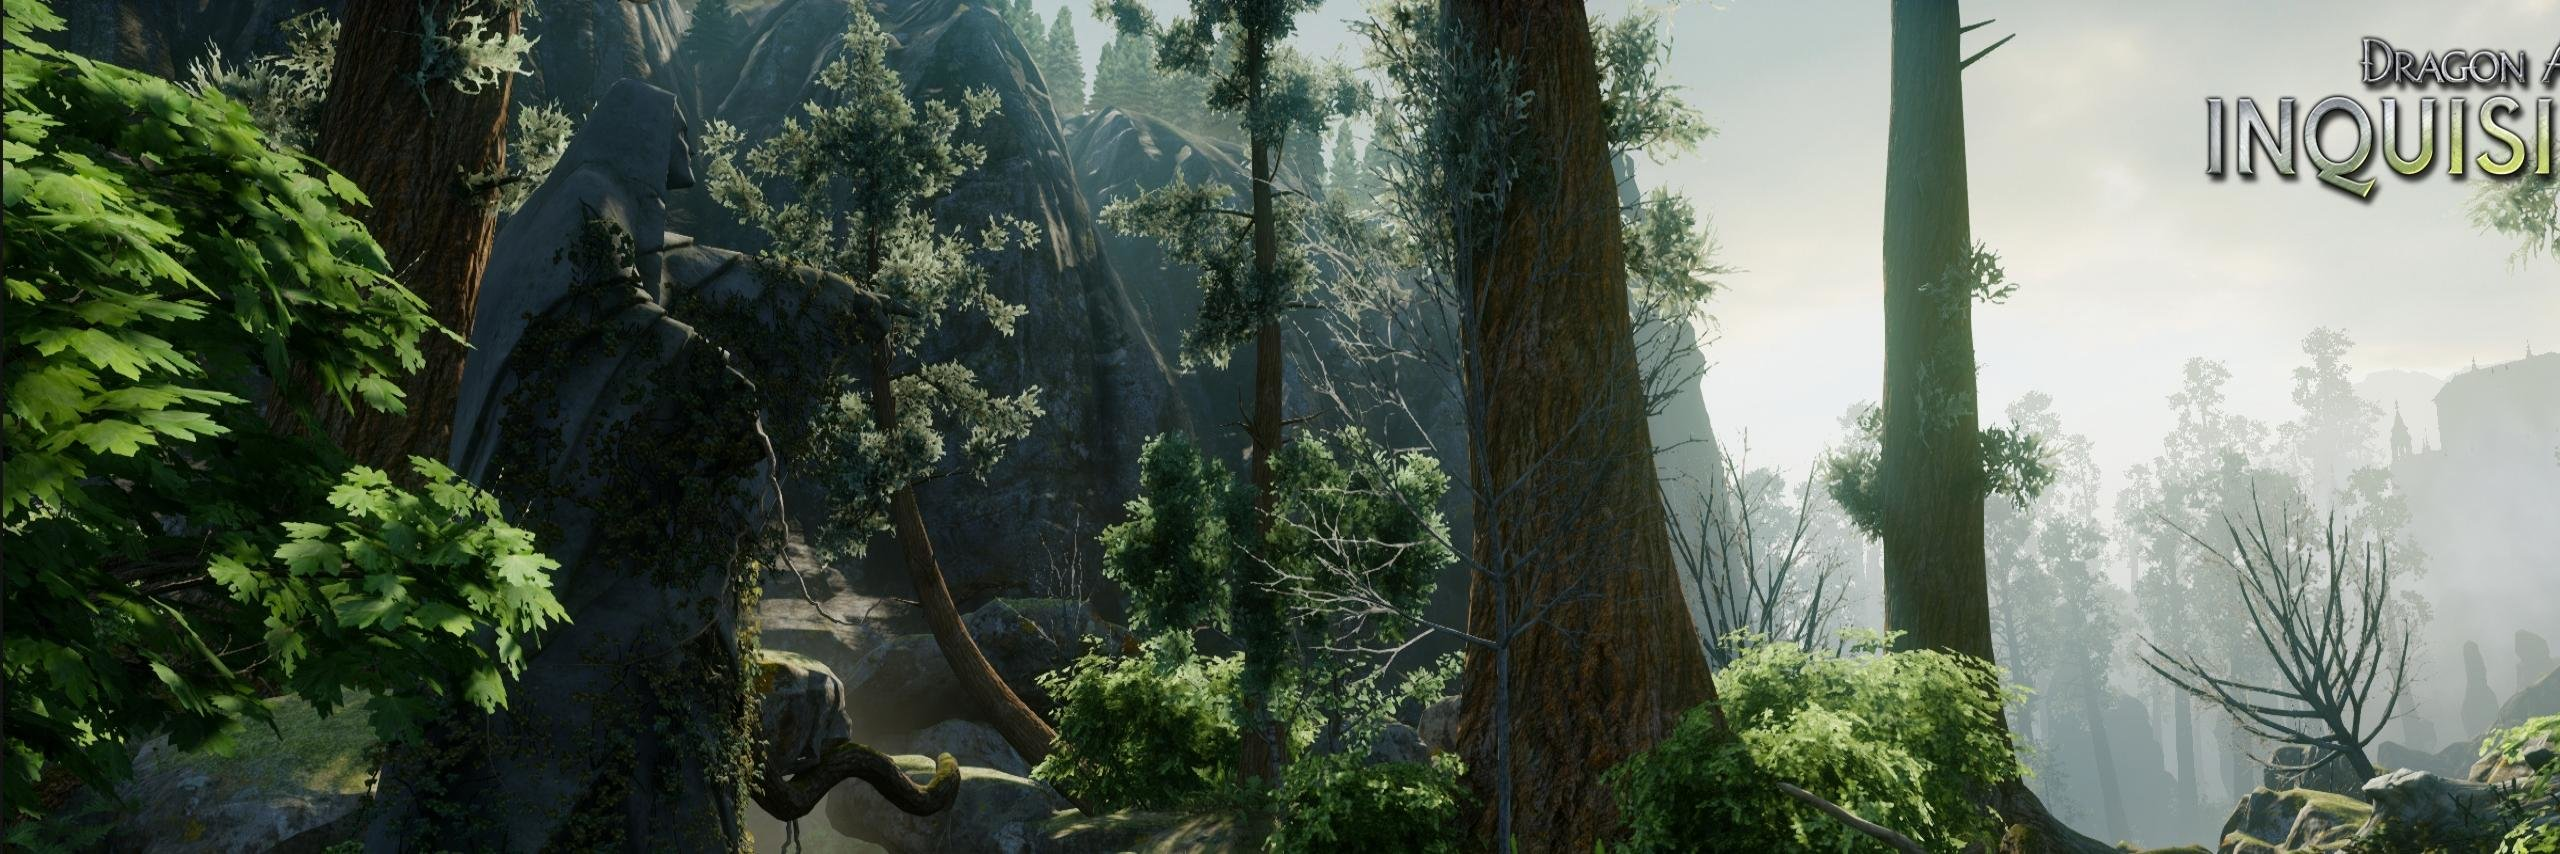 High resolution Dragon Age: Inquisition dual screen 2560x854 wallpaper ID:204579 for desktop